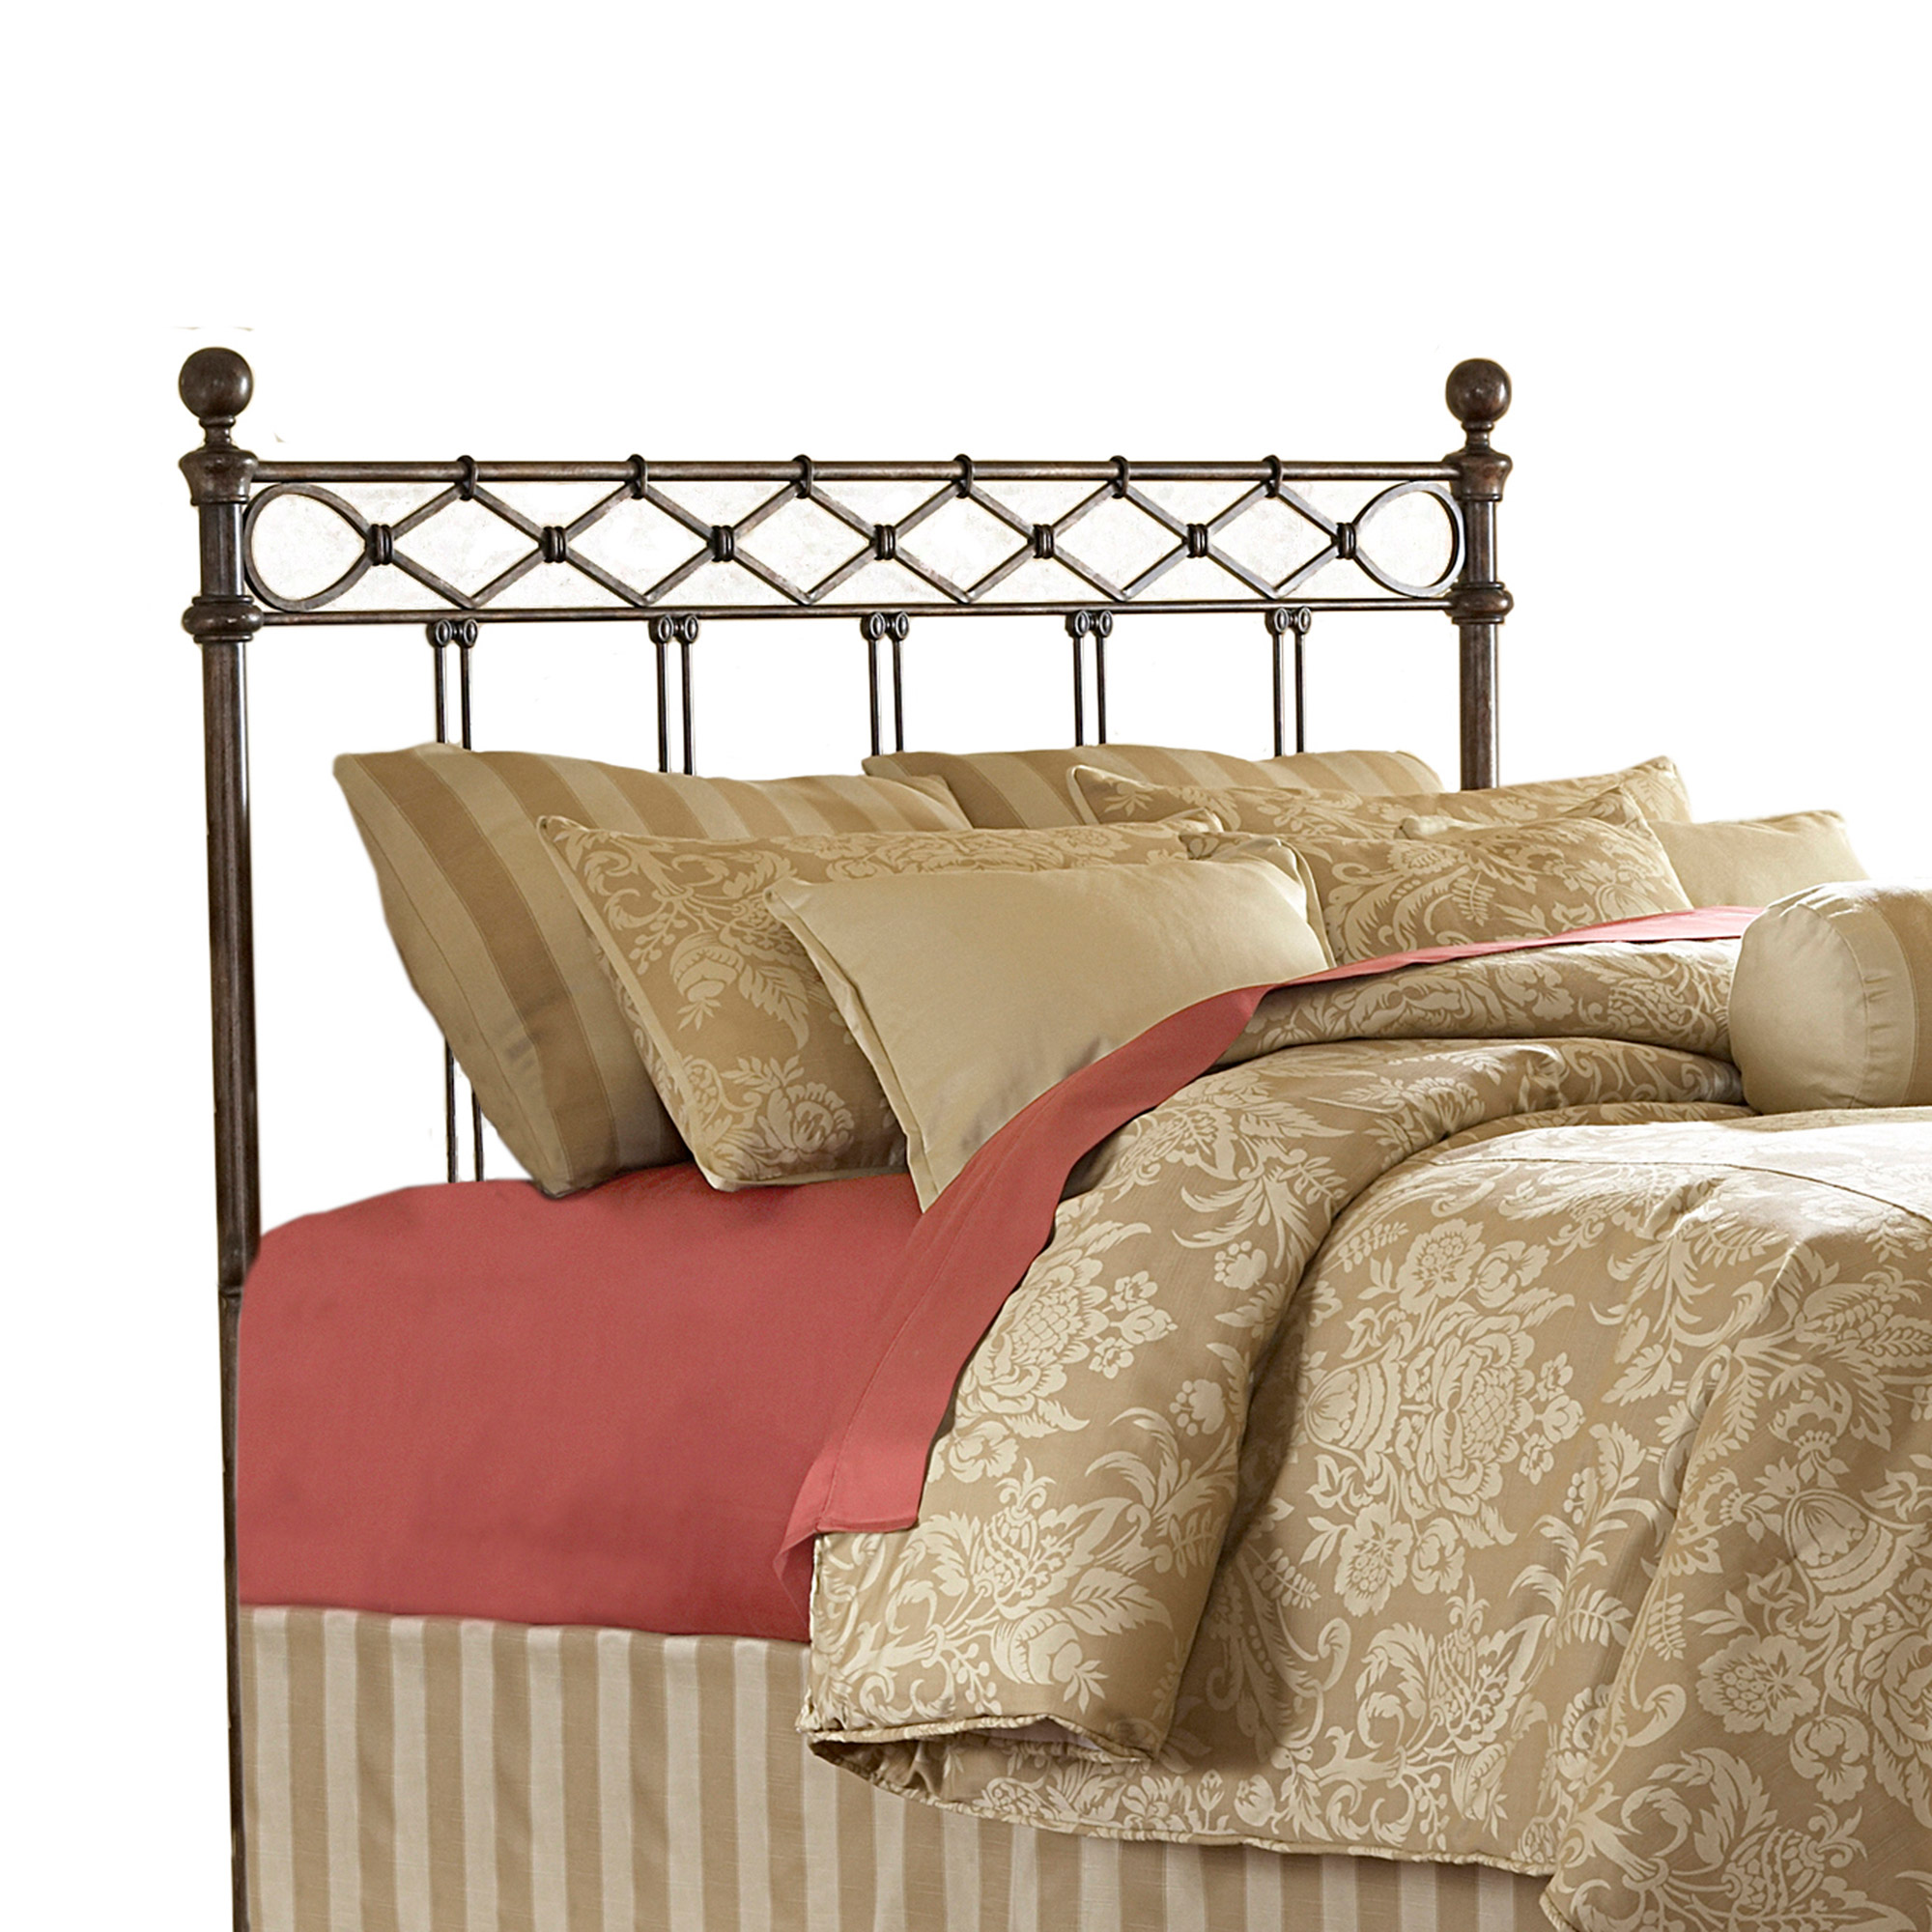 leaf and p in copper beds pattern metal bed hammered size arched group king sycamore design headboard headboards fashion with california panel